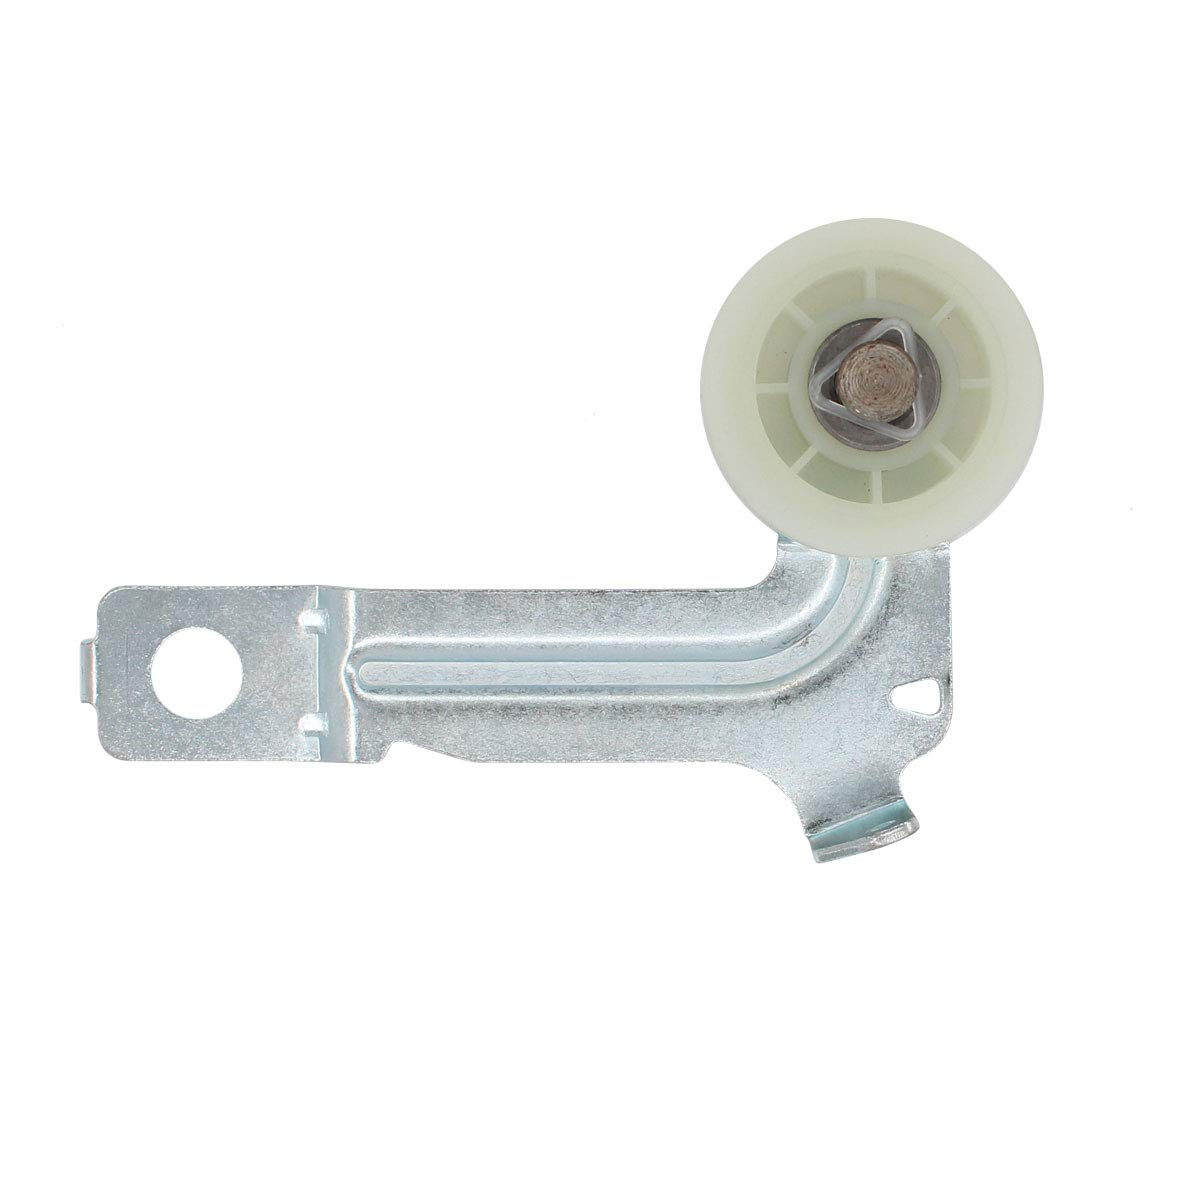 ApplianPar W10547292 Dryer Idler Pulley Wheel & Bracket Replacement for Whirlpool Maytag Kenmore 8547160 W10547292 WPW10547292